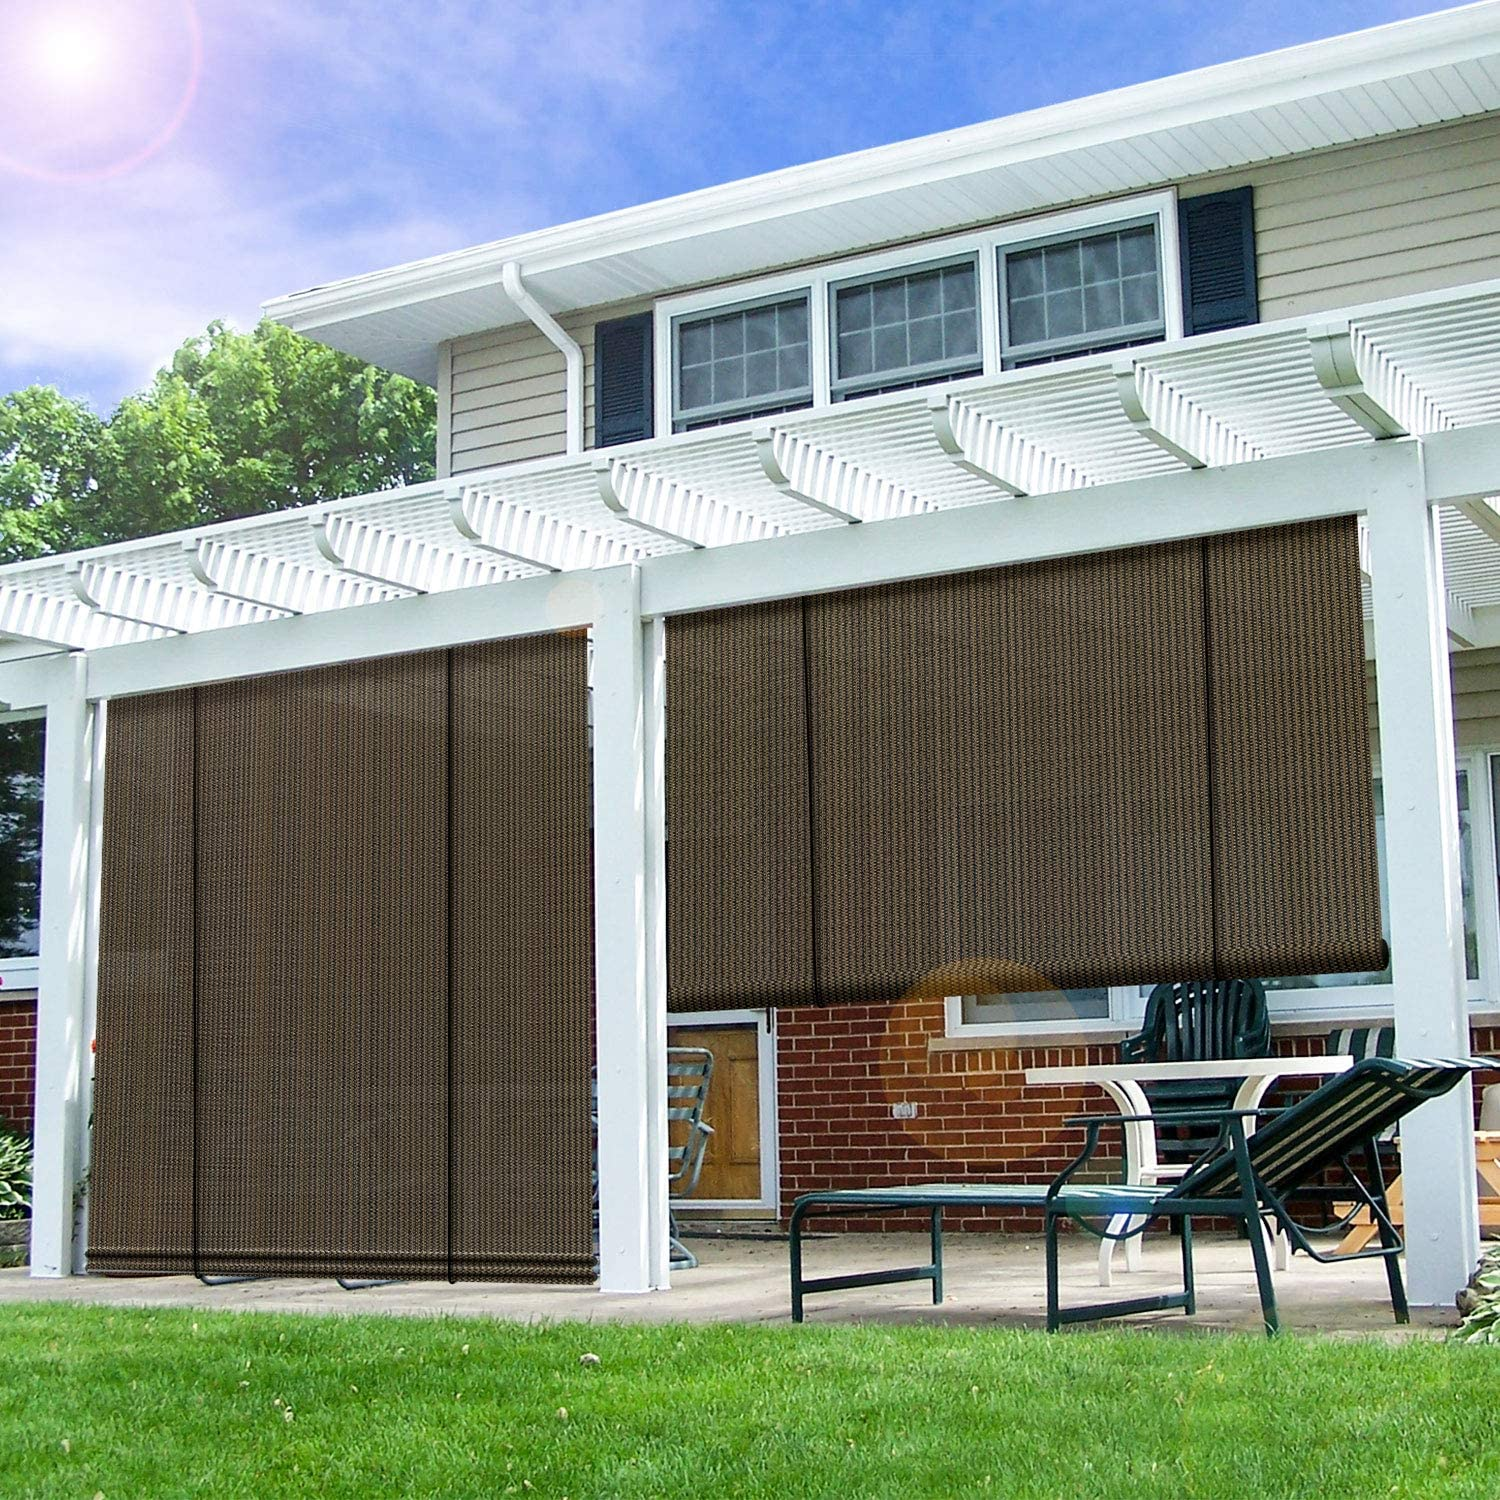 Dealing full price reduction EK Outdoor Roll up Blinds for Shade Porch Boston Mall Backyard Roller